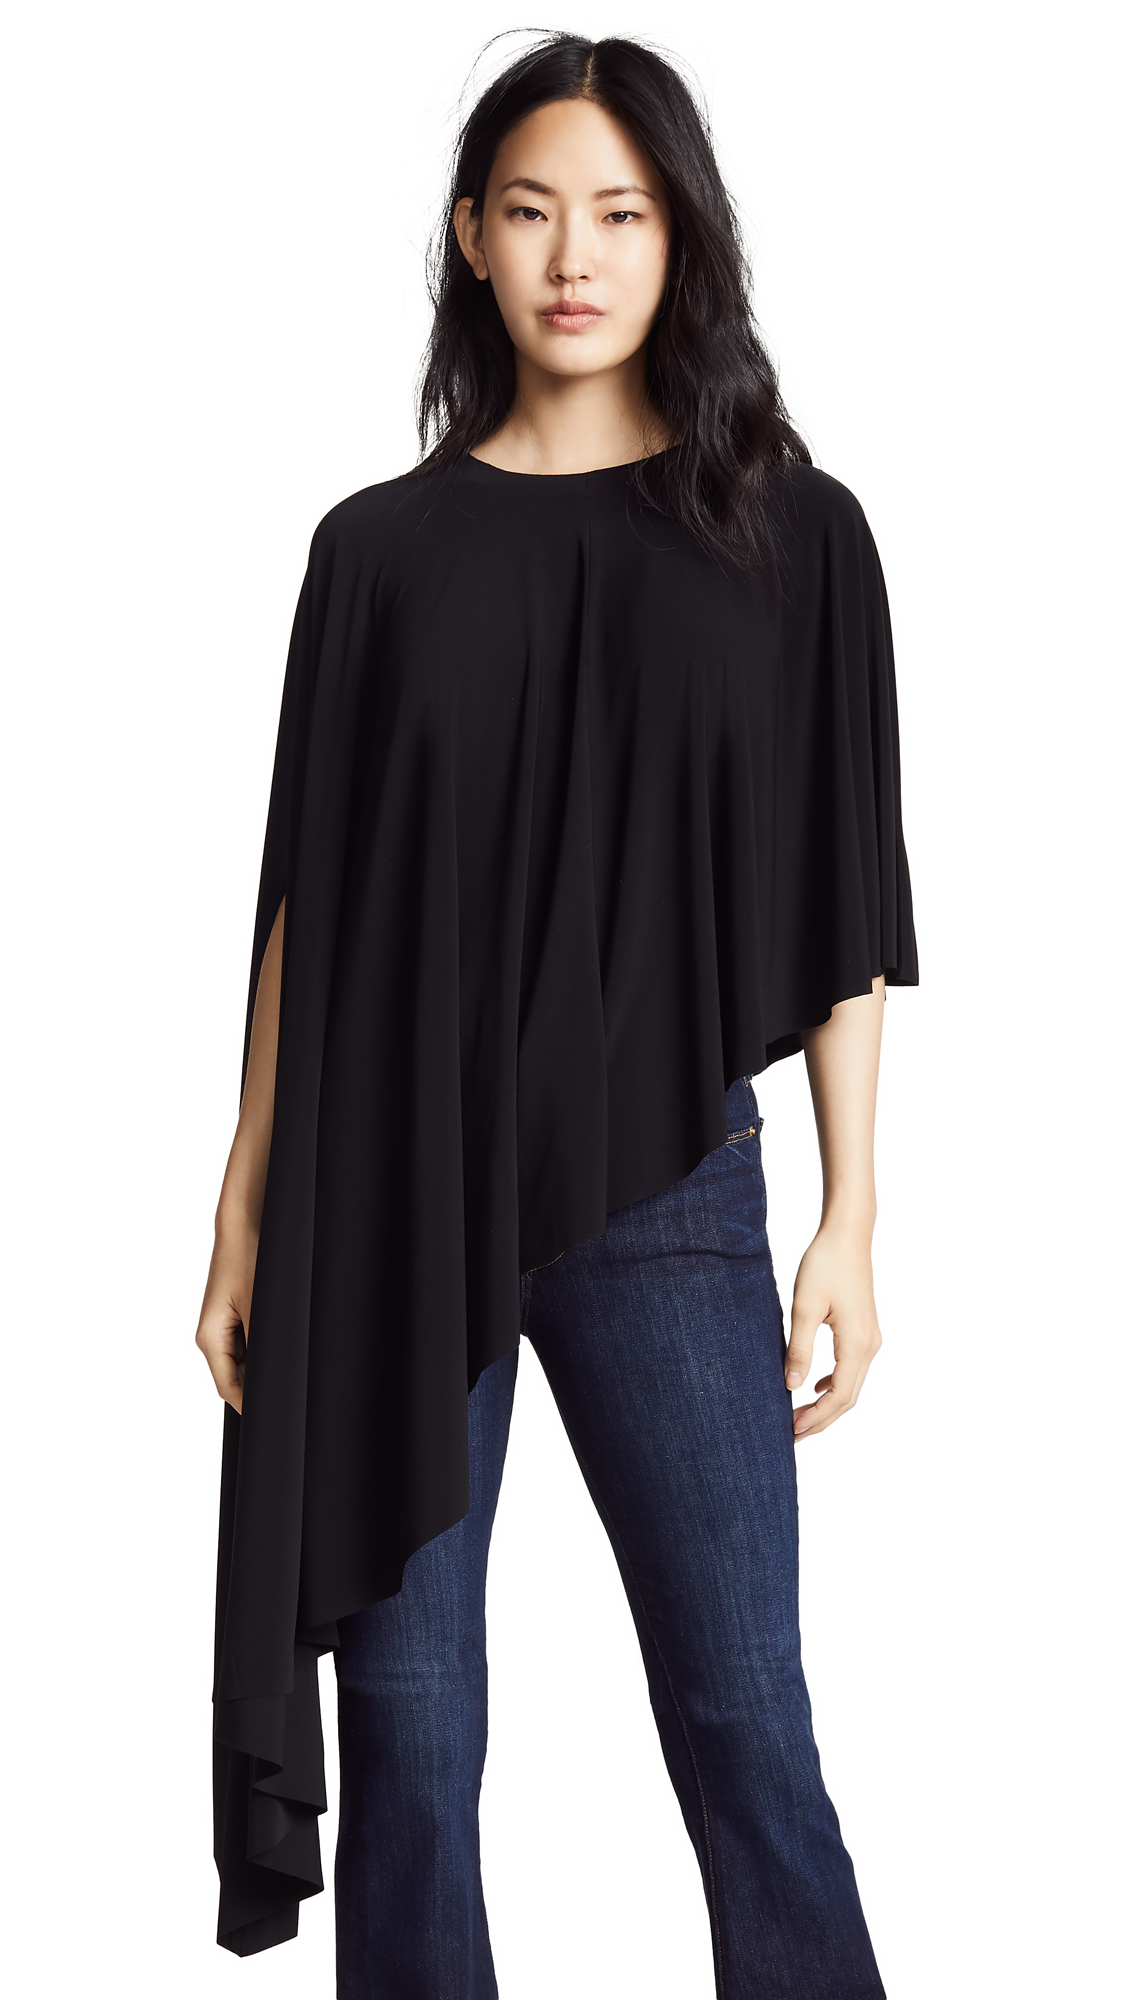 Norma Kamali Asymmetric Top - Black